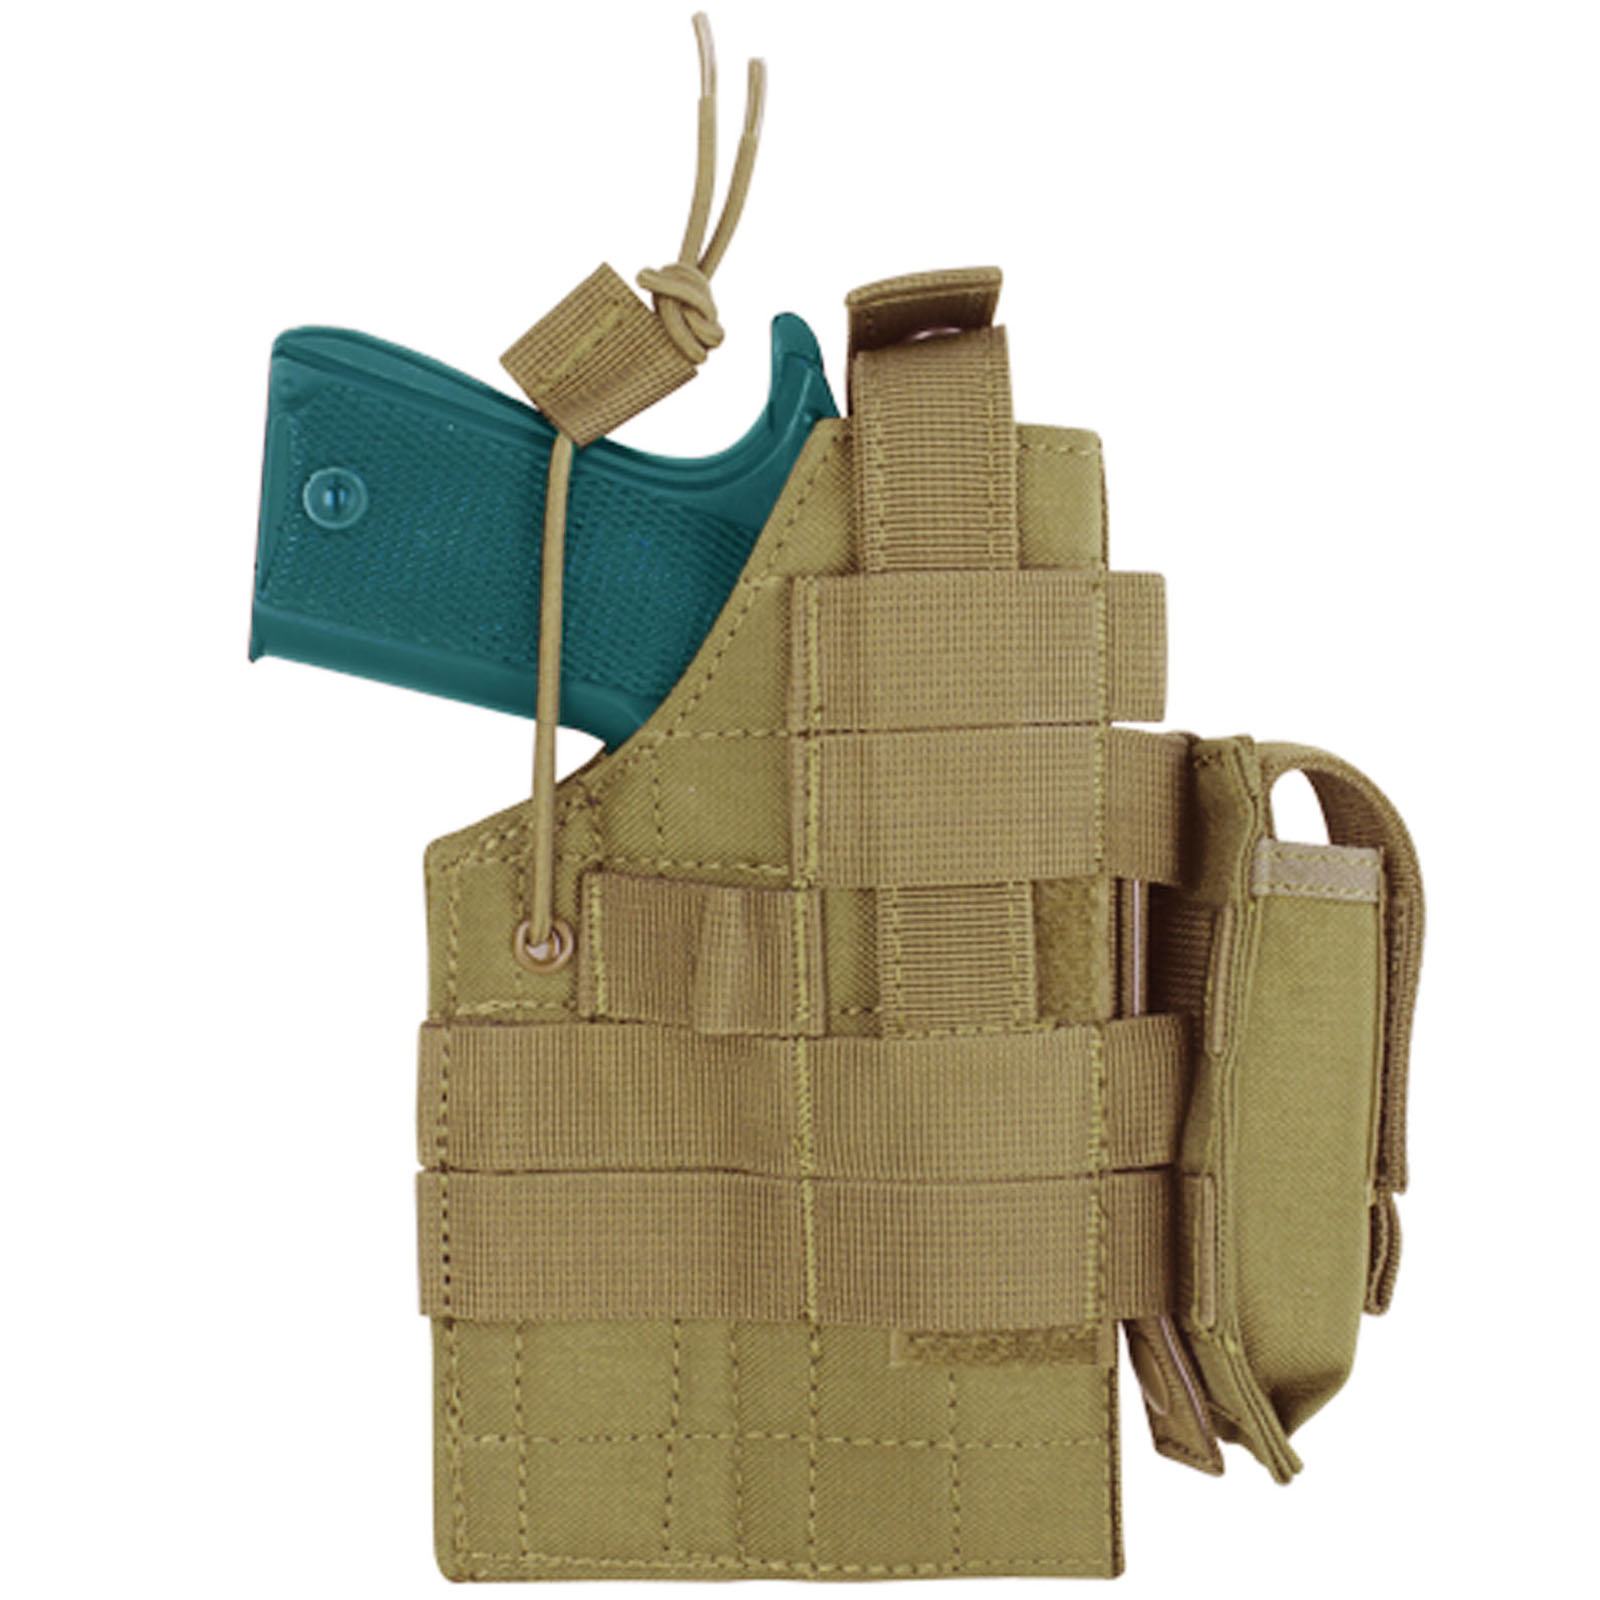 Condor Ambidextrous MOLLE Holster for 1911 with Mag Pouch - Coyote Tan